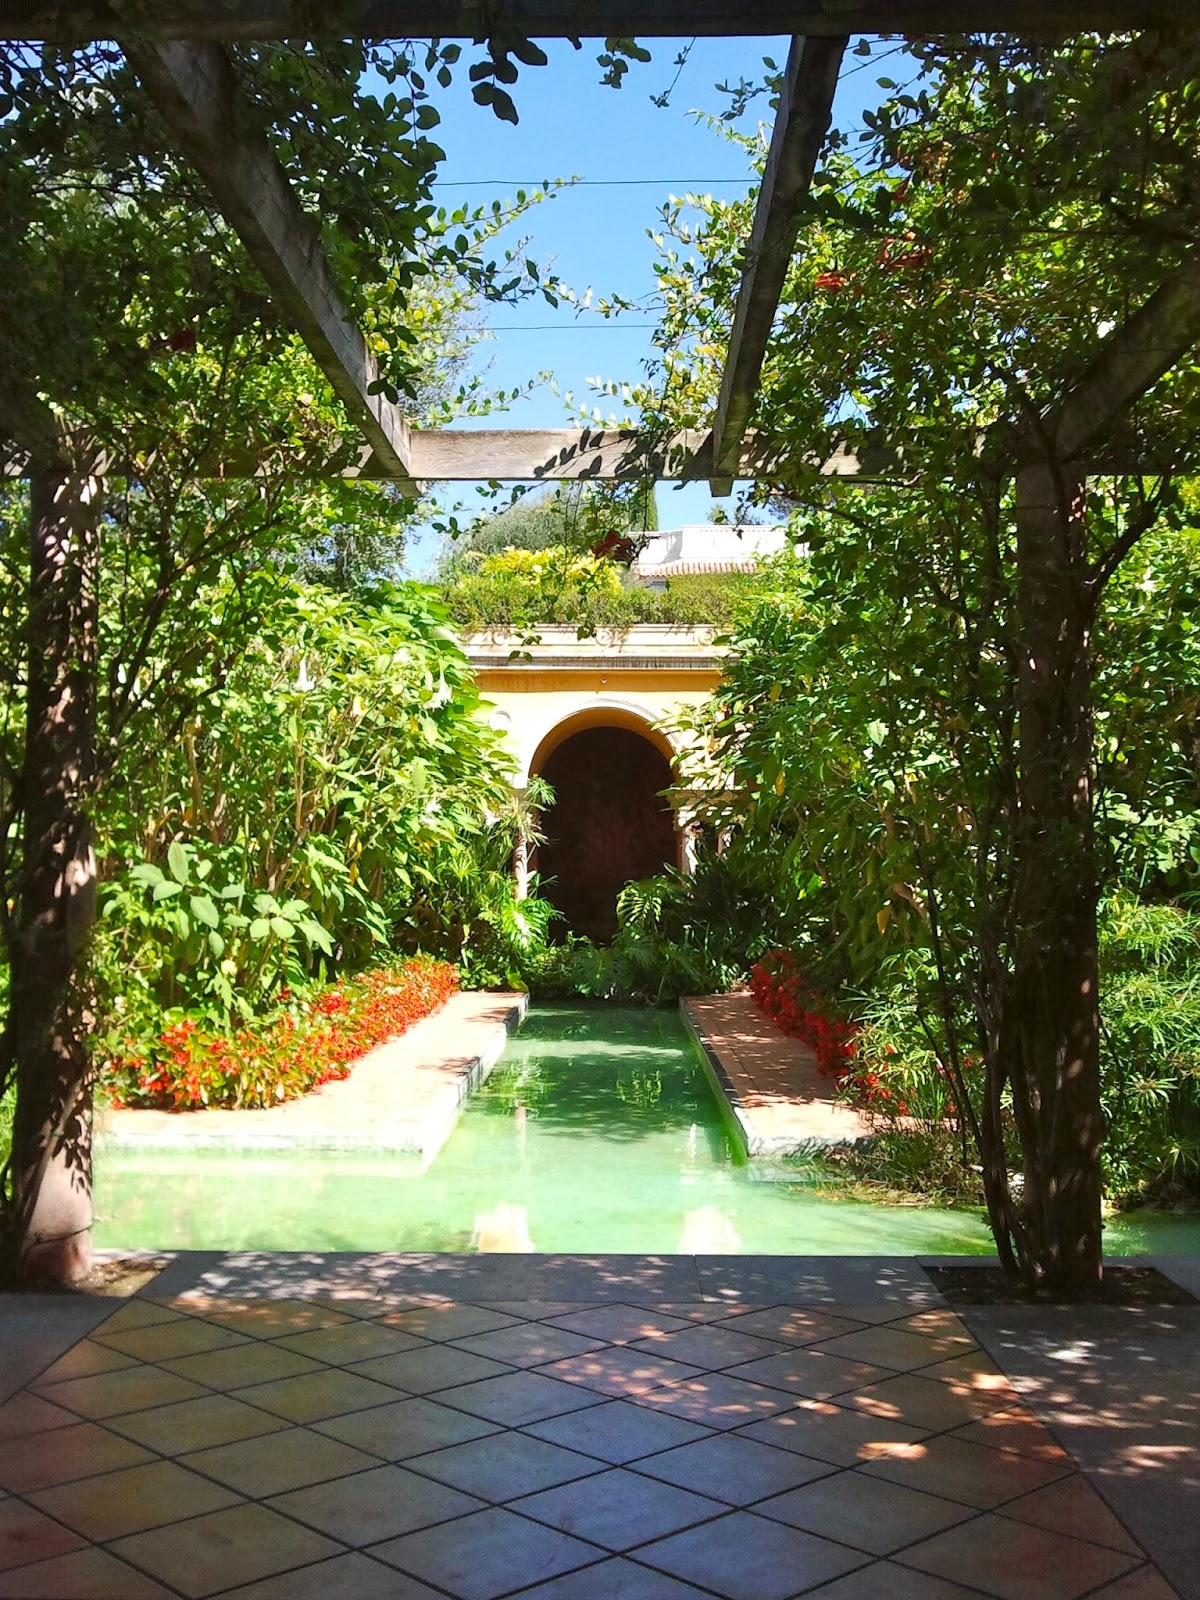 Destination: Fiction: Gardens Of The Villa Ephrussi De